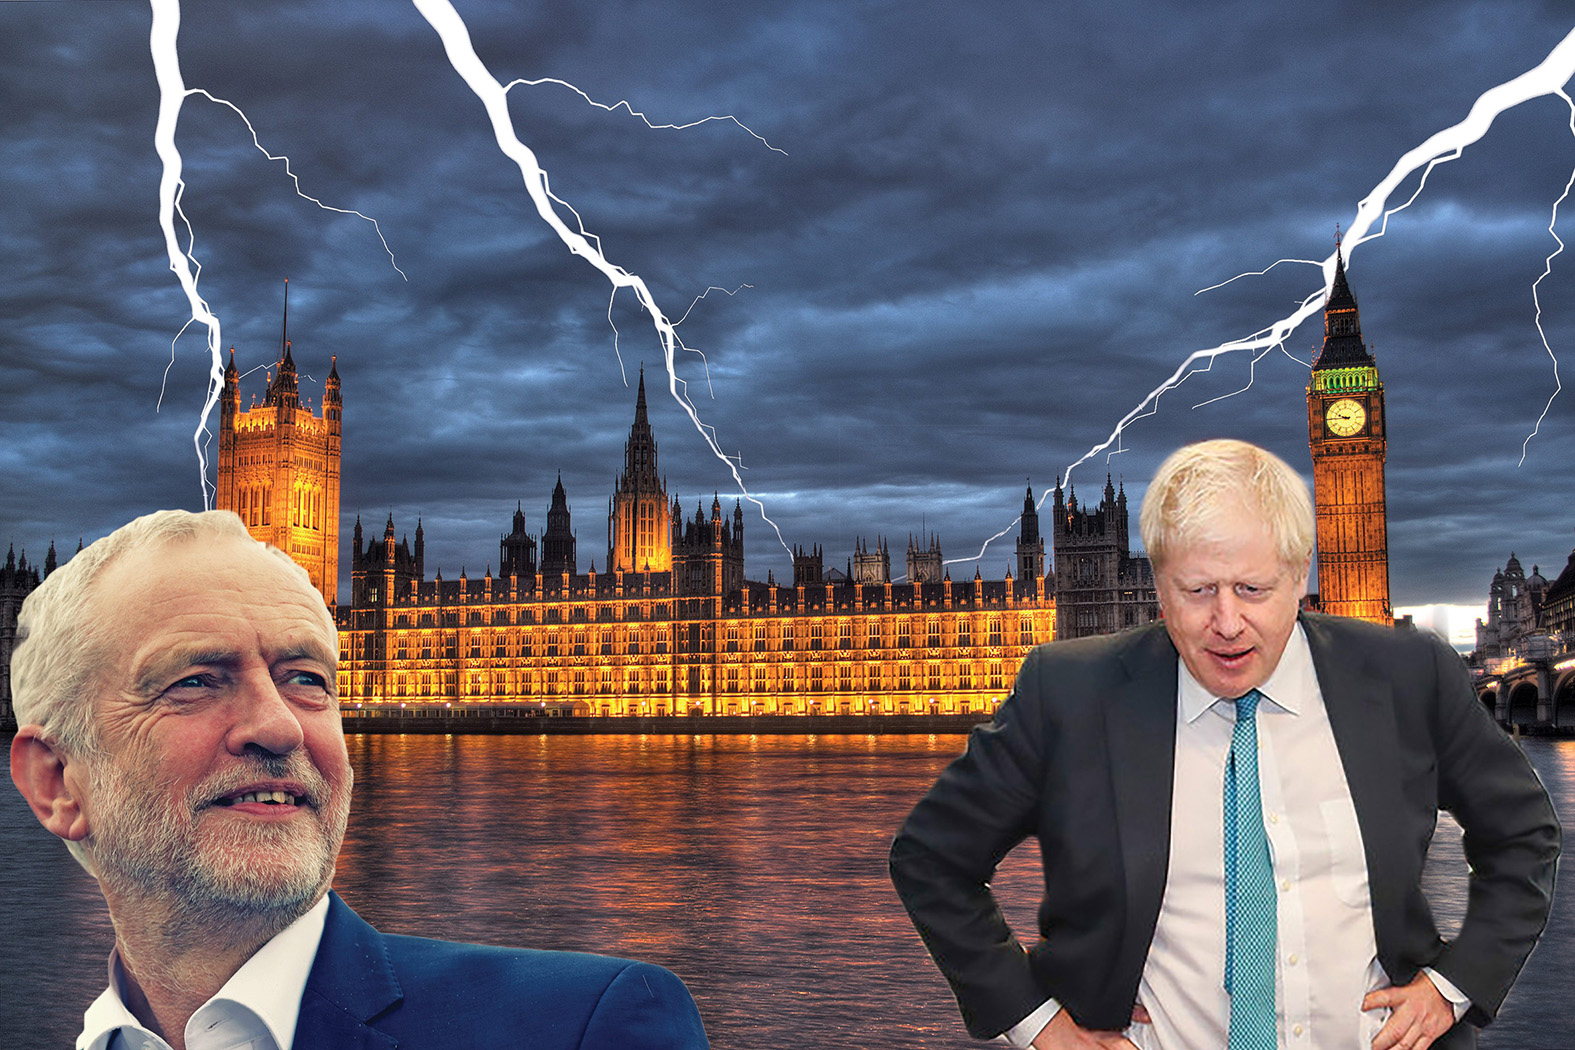 Johnson parliament storm